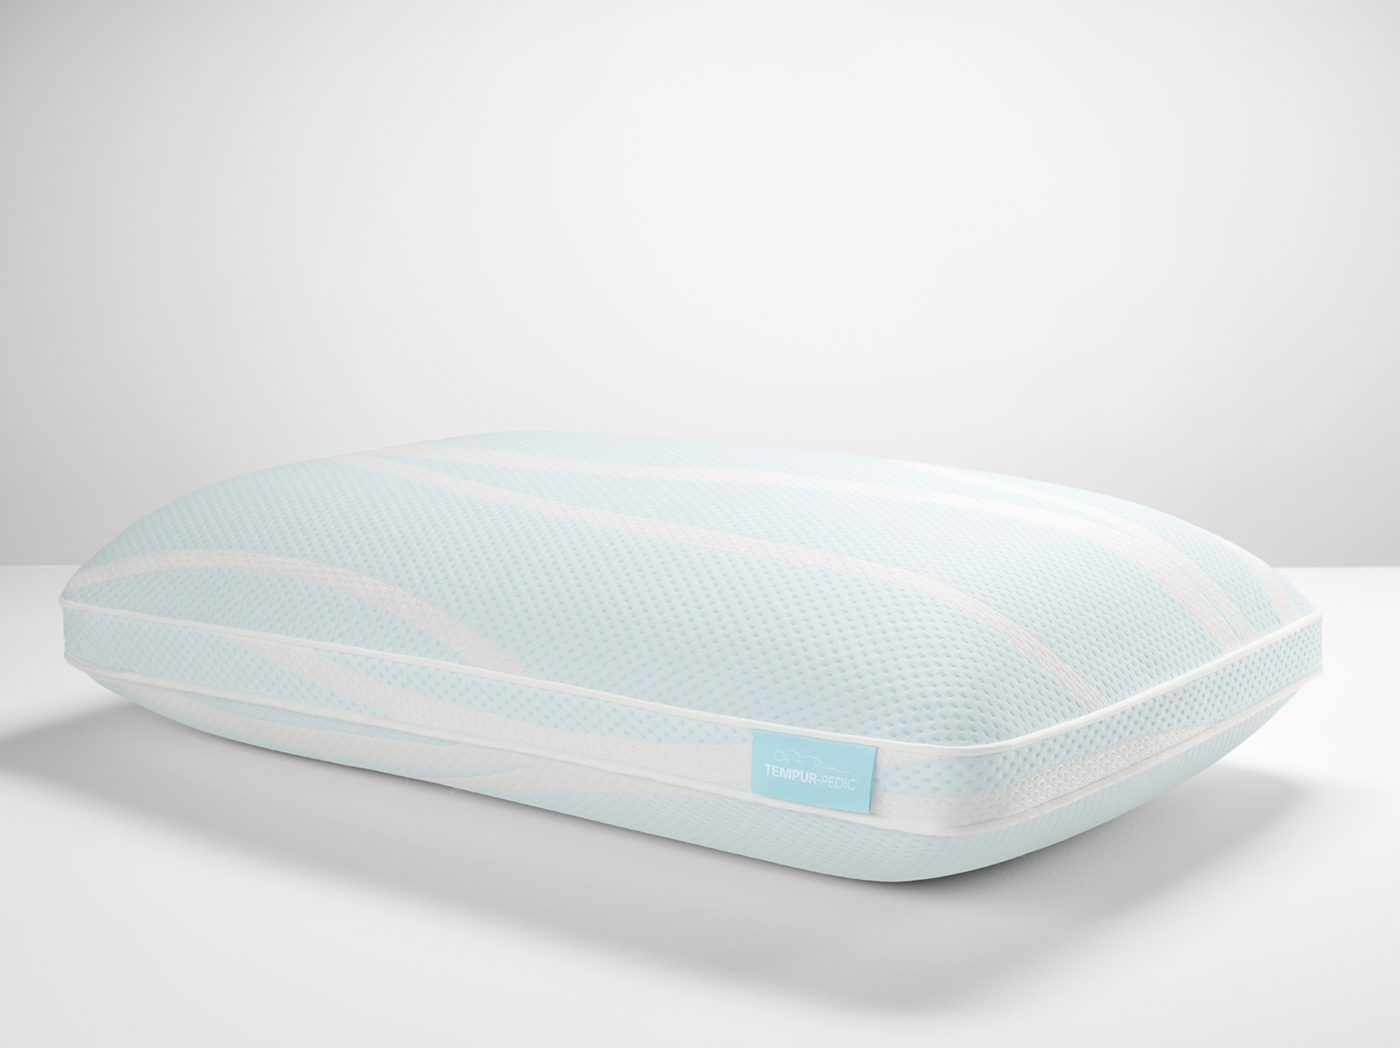 Tempur-Breeze Pro Hi Advanced Cooling Queen Pillow